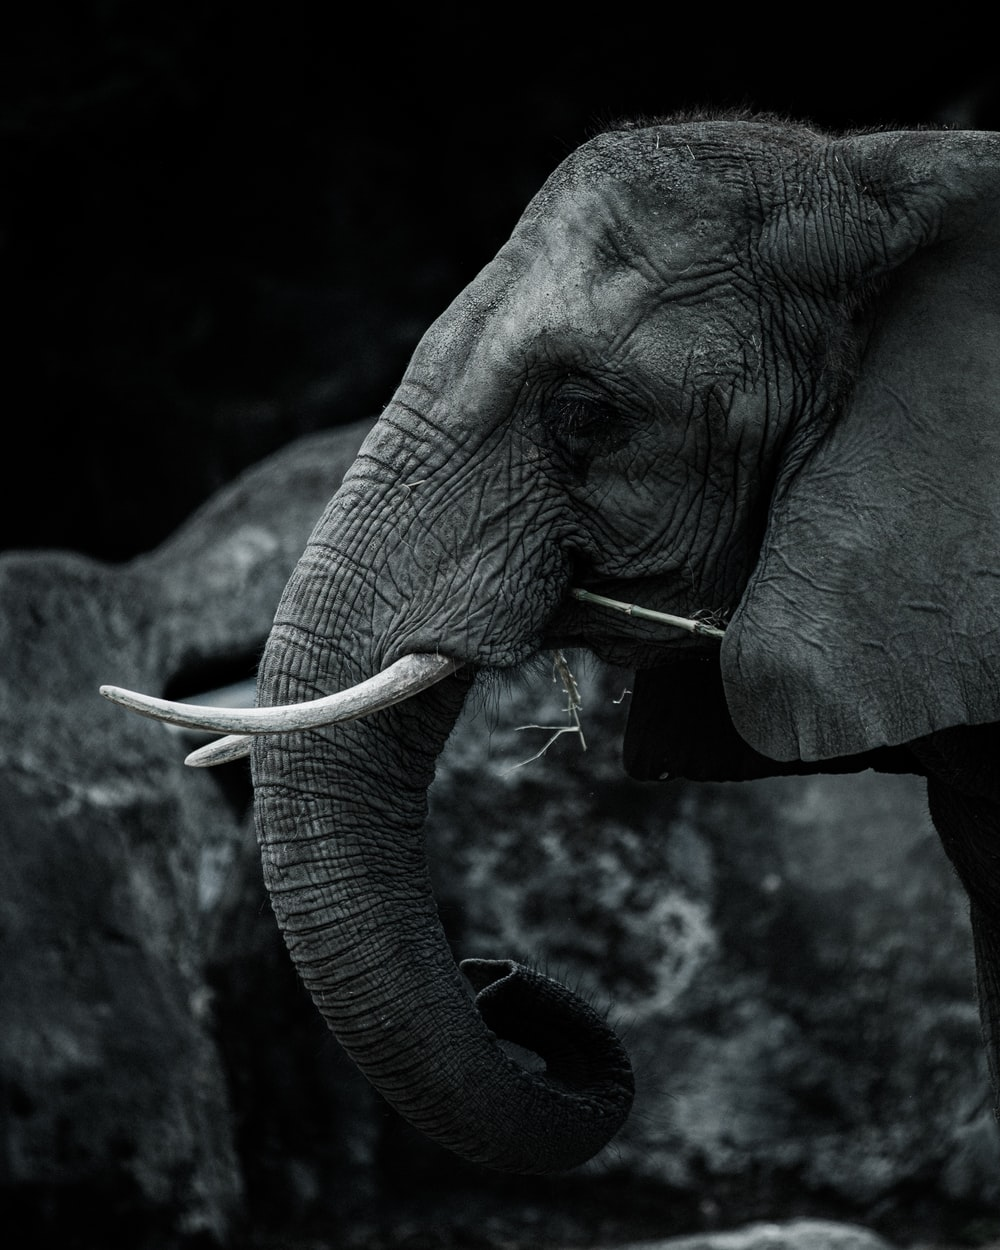 elephant drinking water from a water